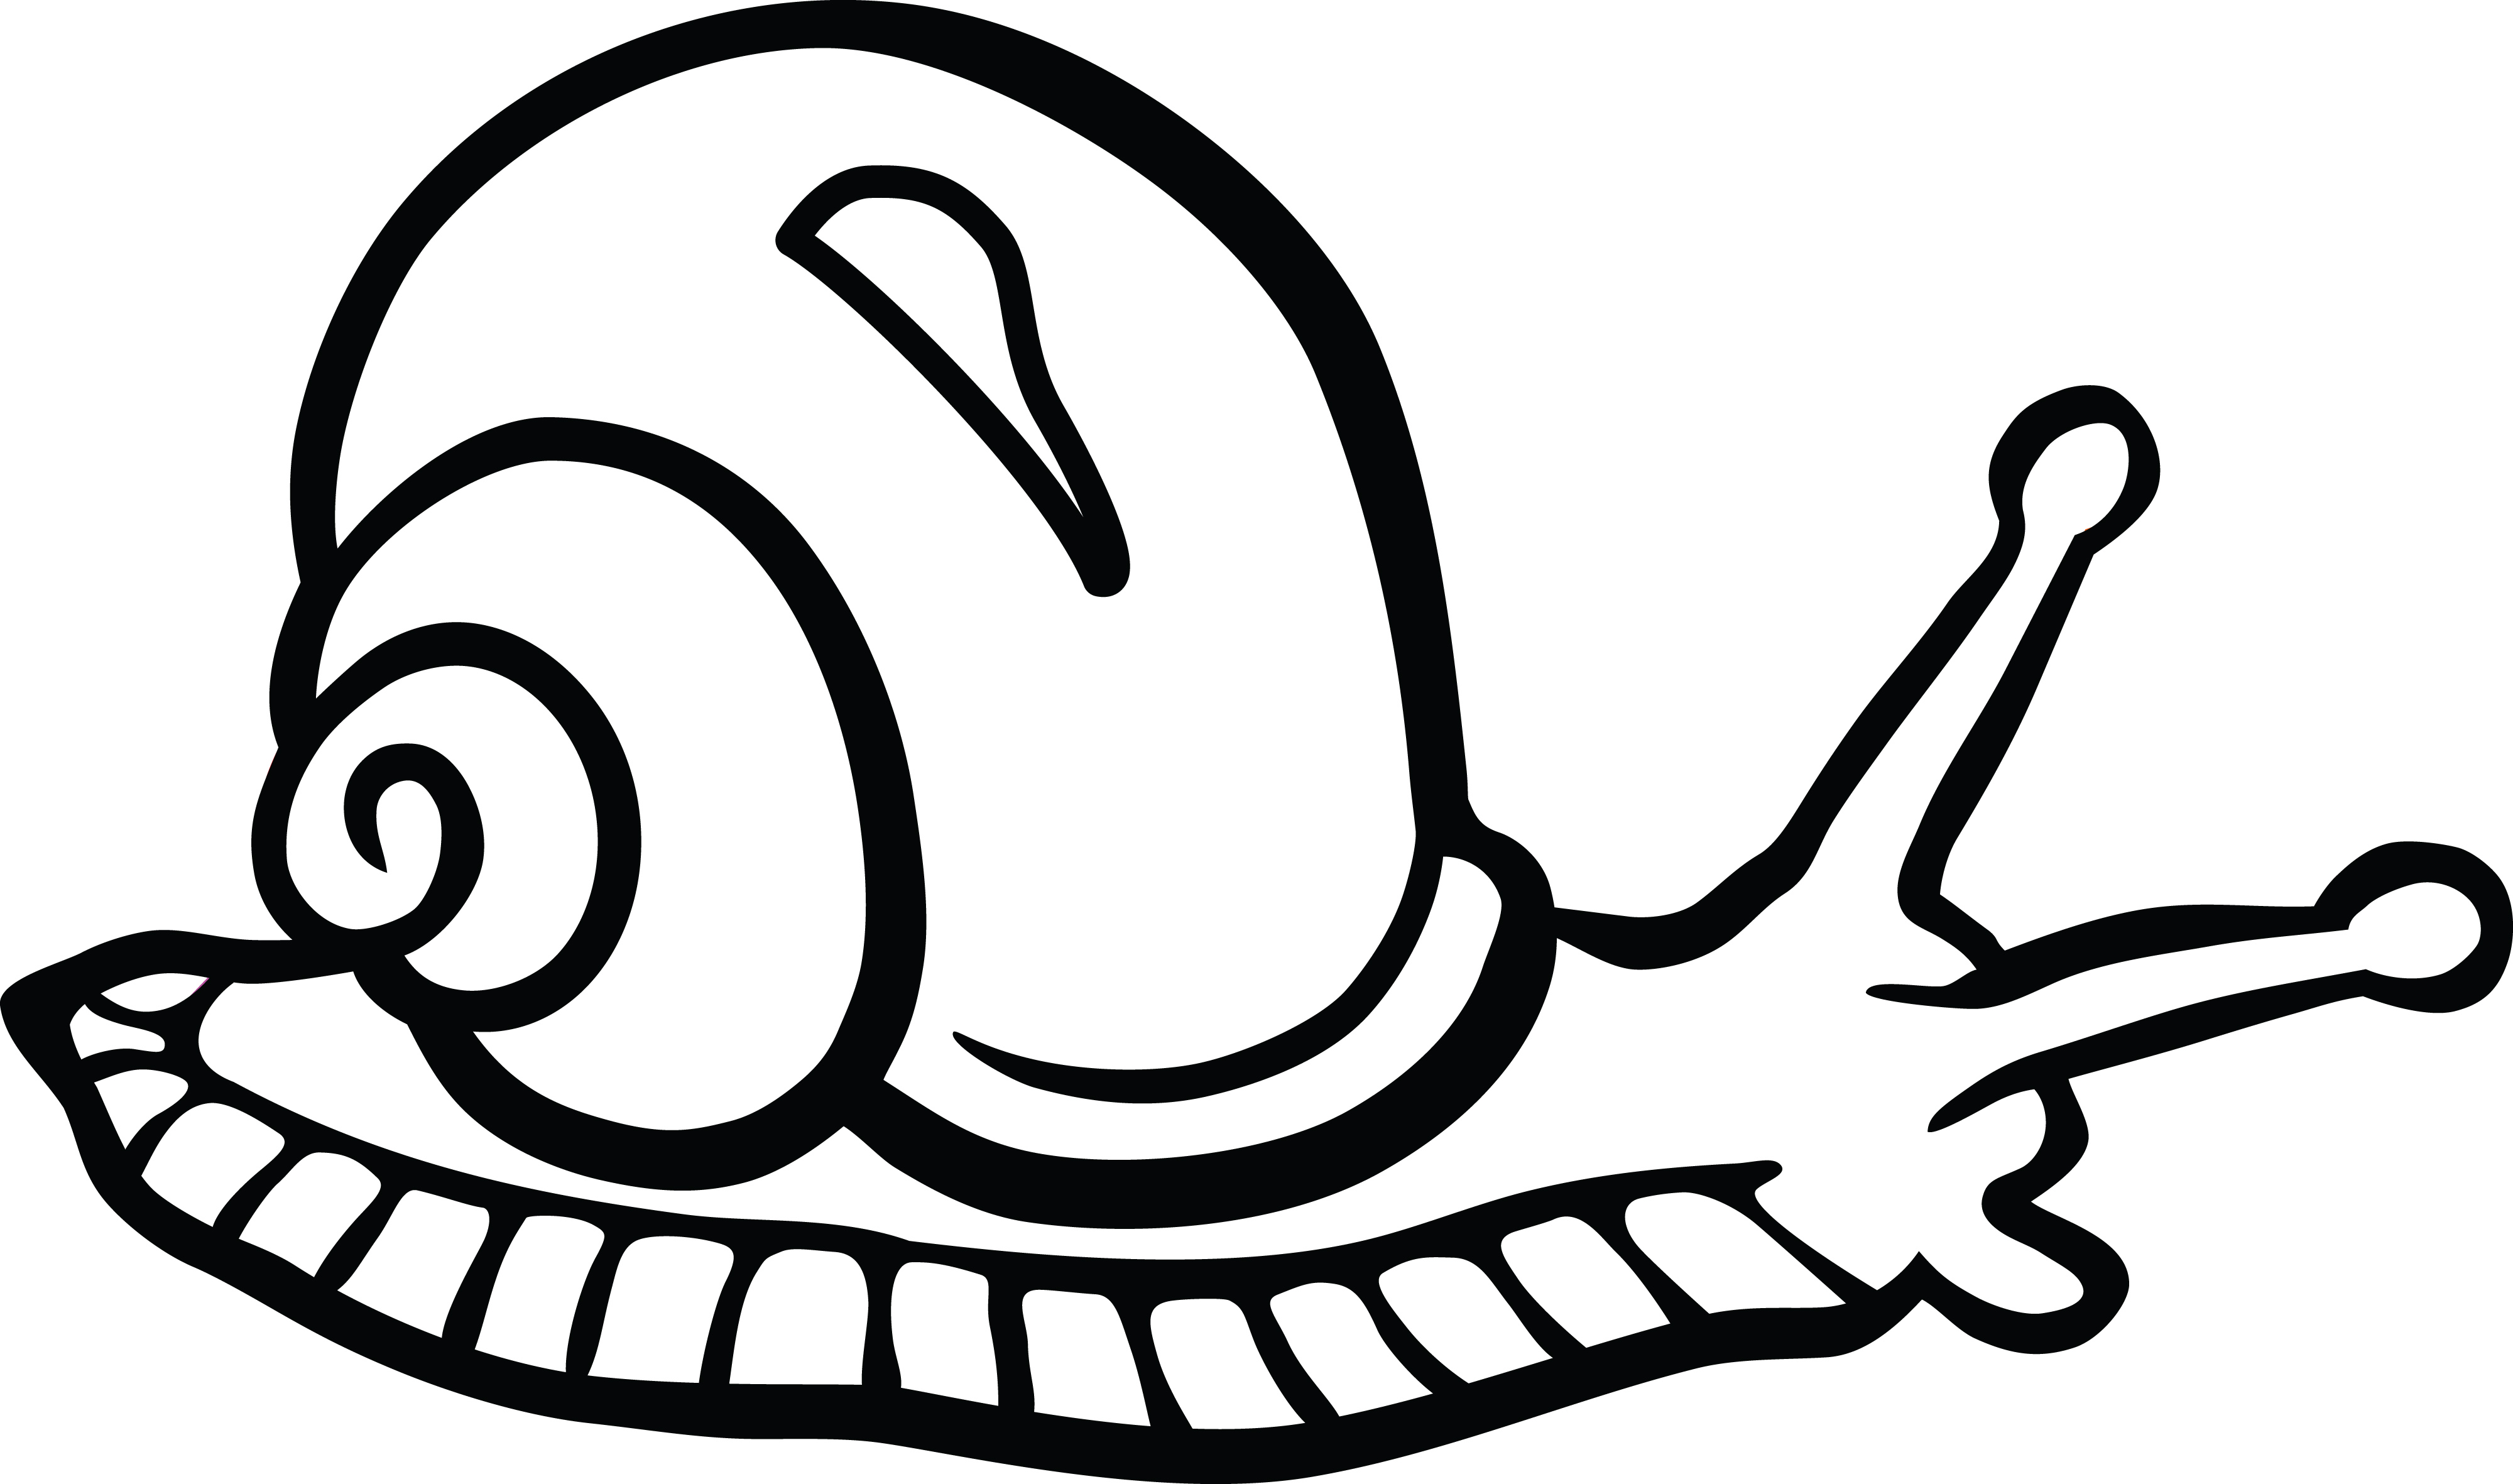 Free Clipart Of A snail.